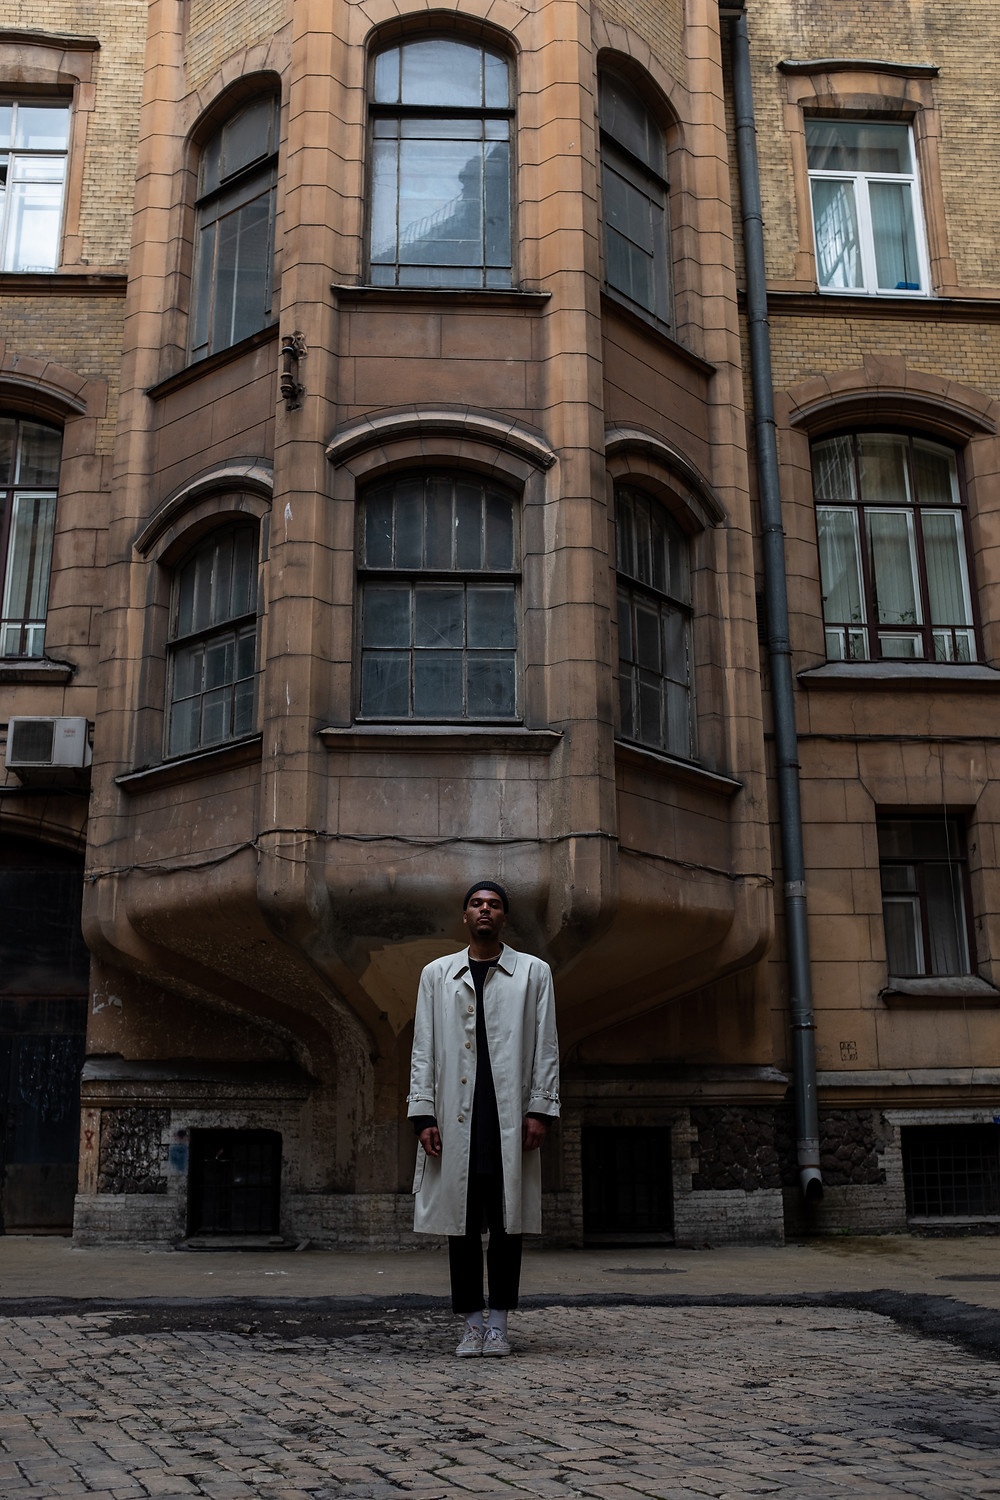 A man in a long white overcoat